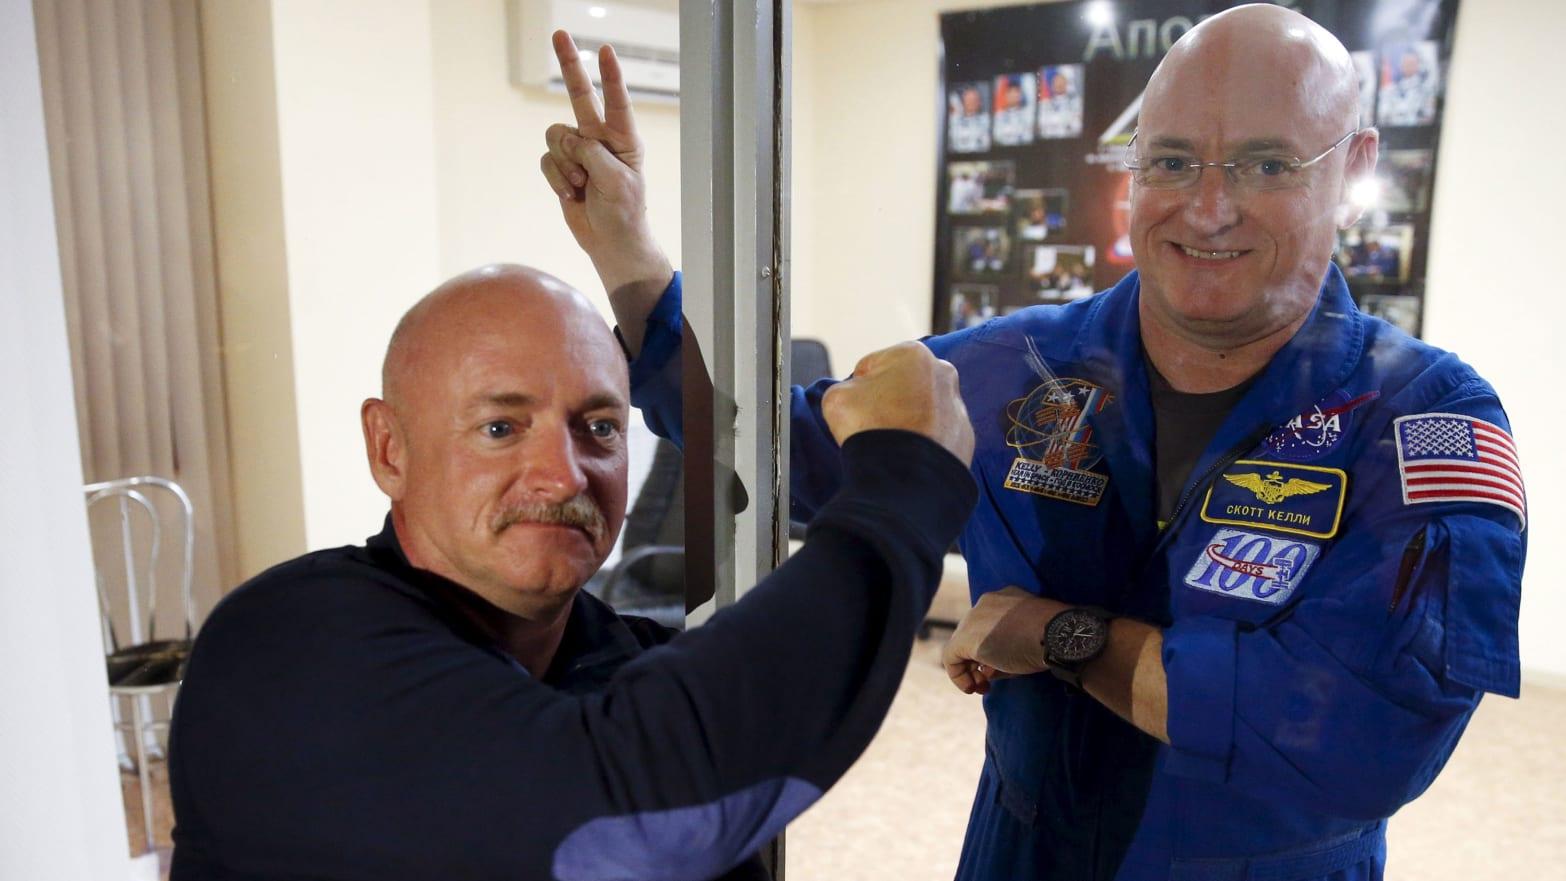 mark and scott kelly twin study nasa francine garrett-bakelman university of virginia cornell blood telomeres telomere lengthening aging cancer